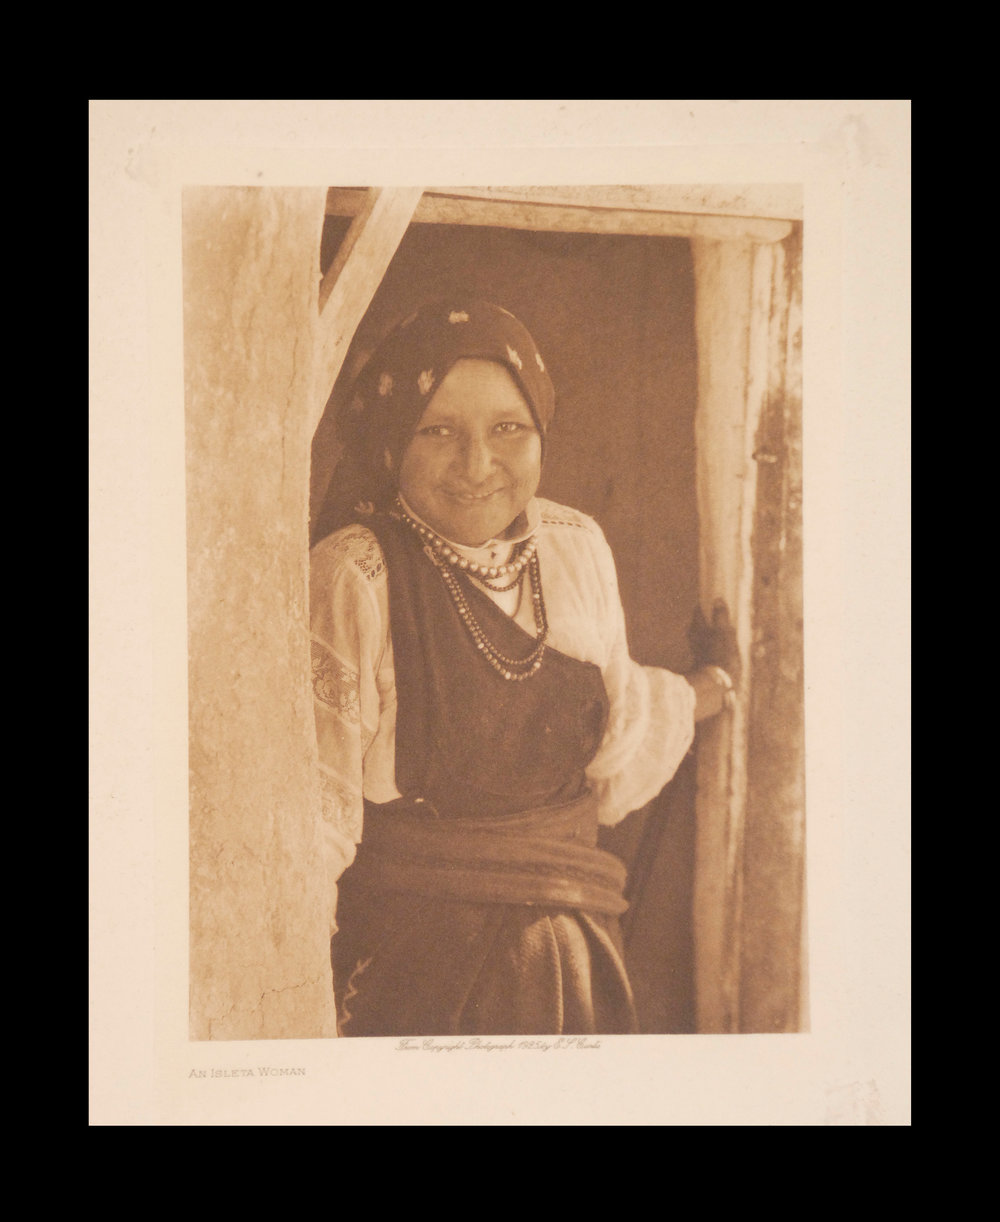 """An Isleta Woman""  1925  Vol.16 Tissue Print"